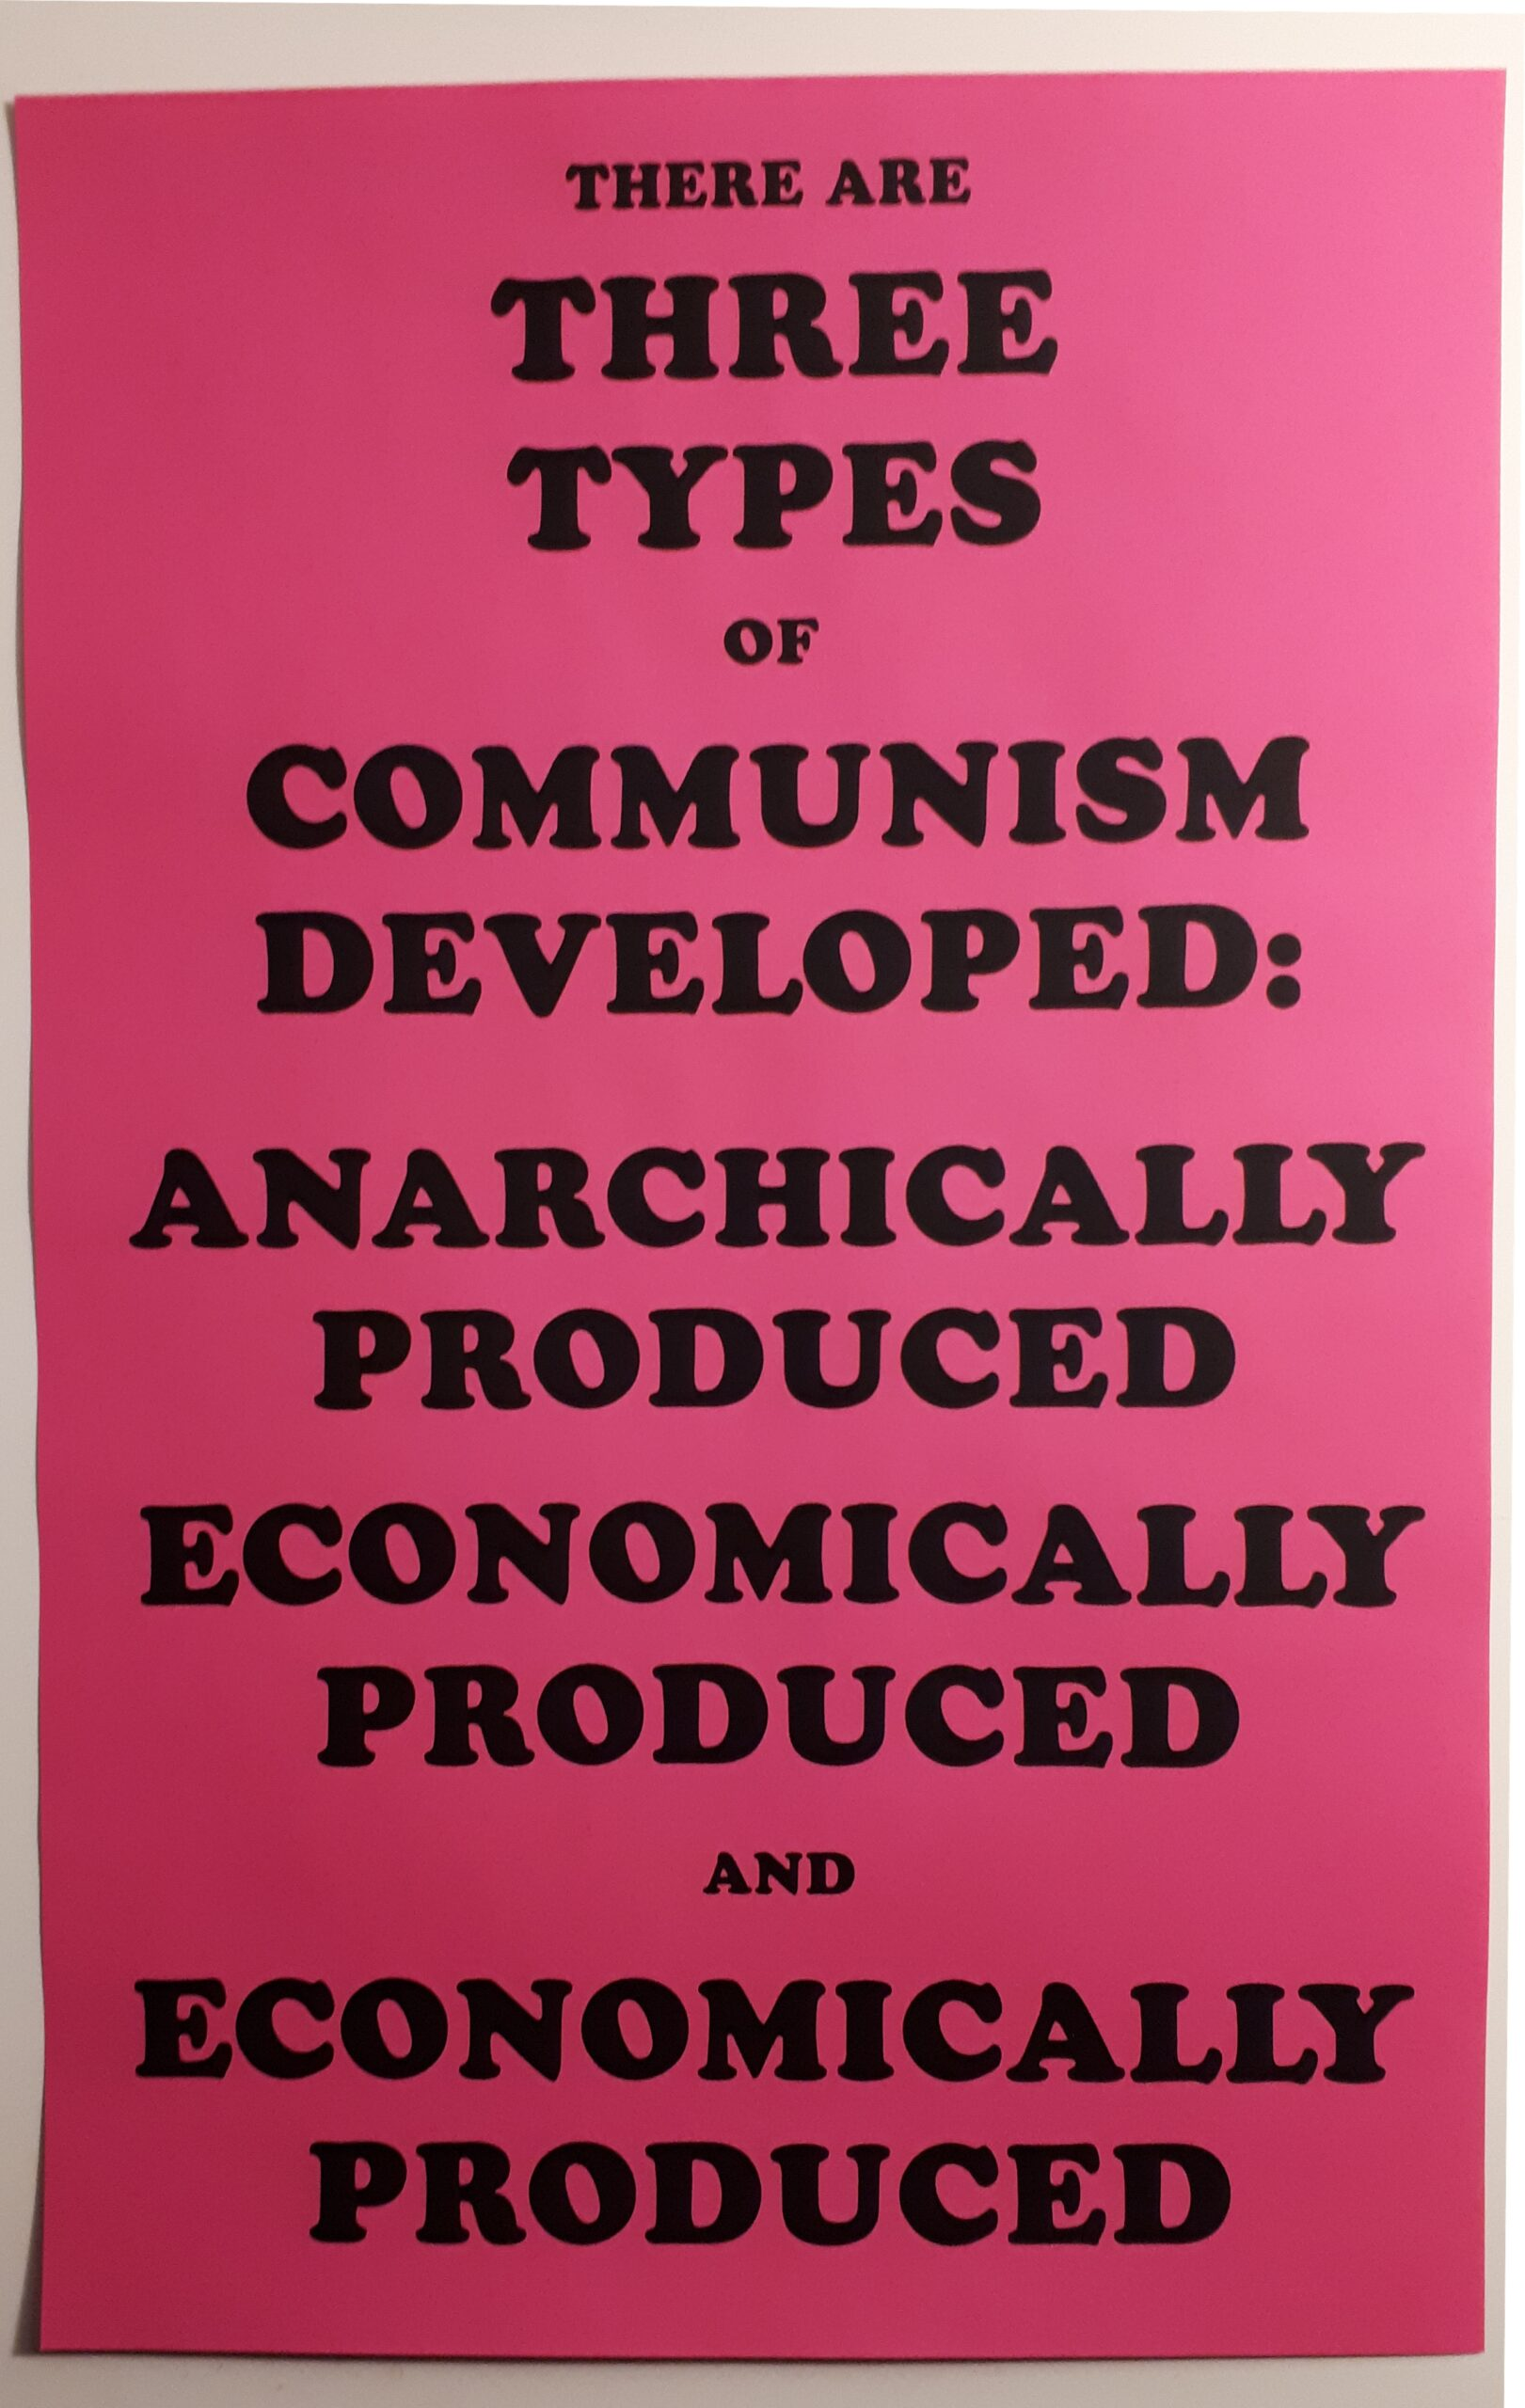 there are three types of communism developed: anarchically produced, economically produced, and economically produced